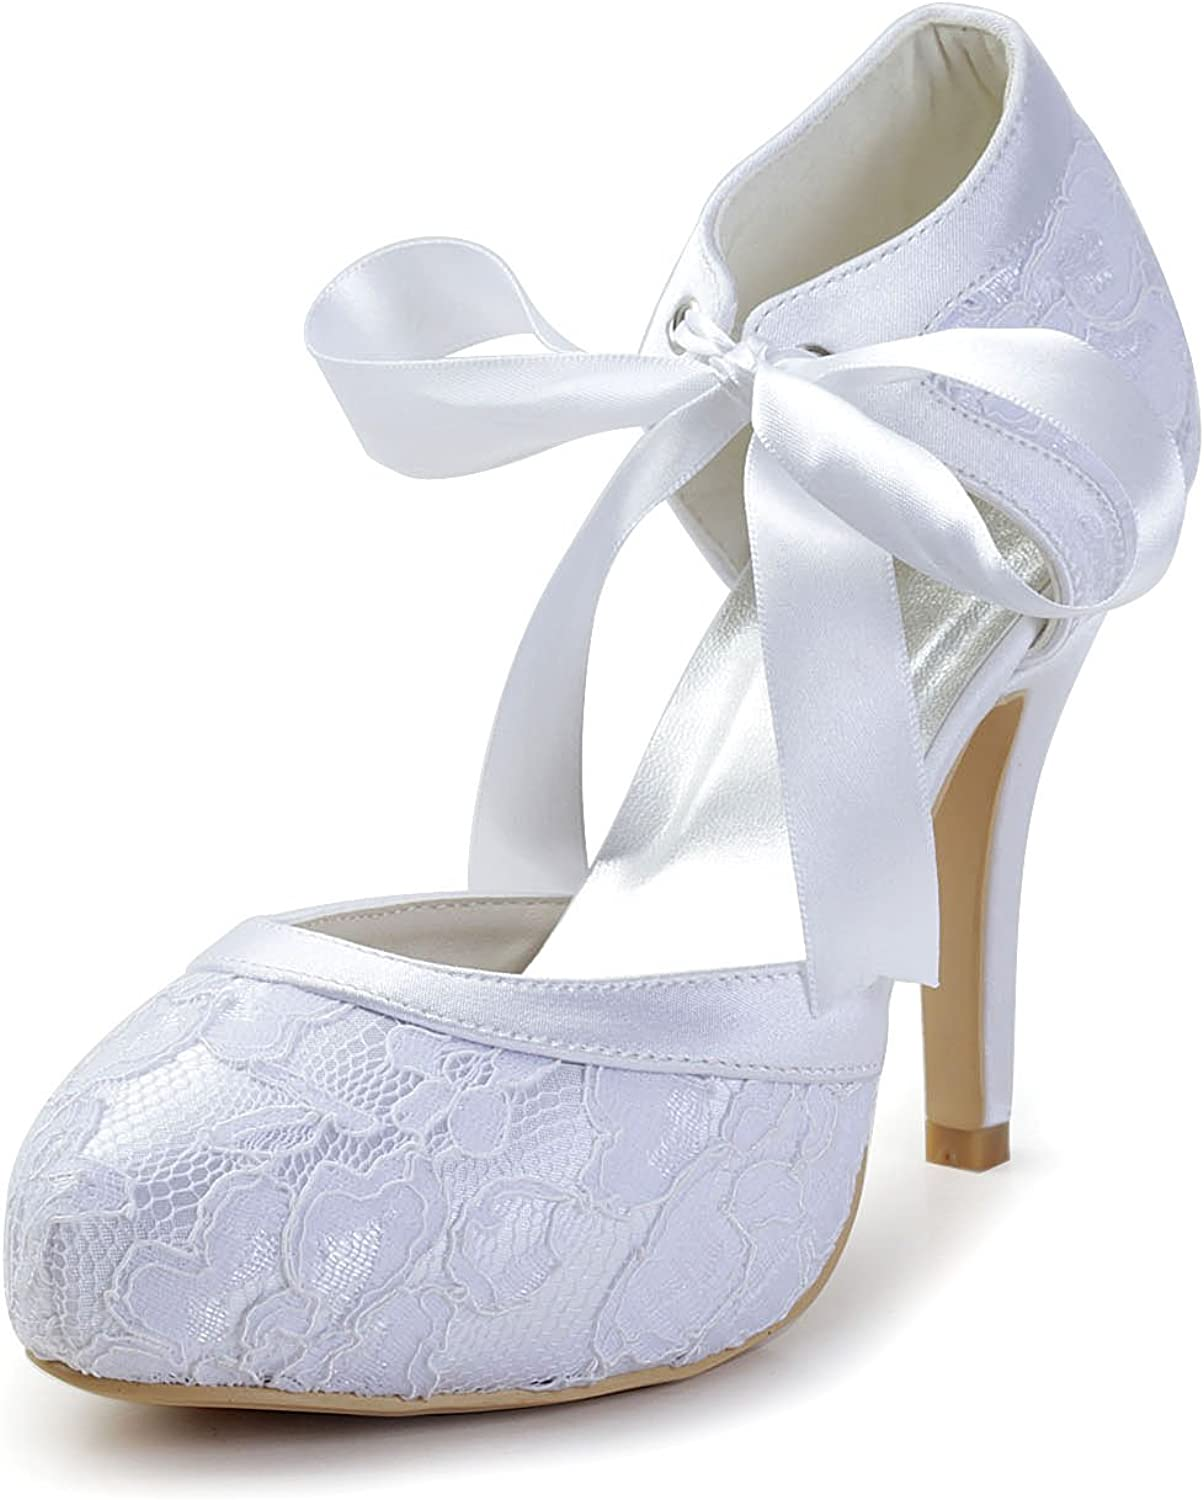 Minishion GYAYL452 Womens Stiletto High Heel Lace Evening Party shoes Bridal Wedding Mary Jane Pumps